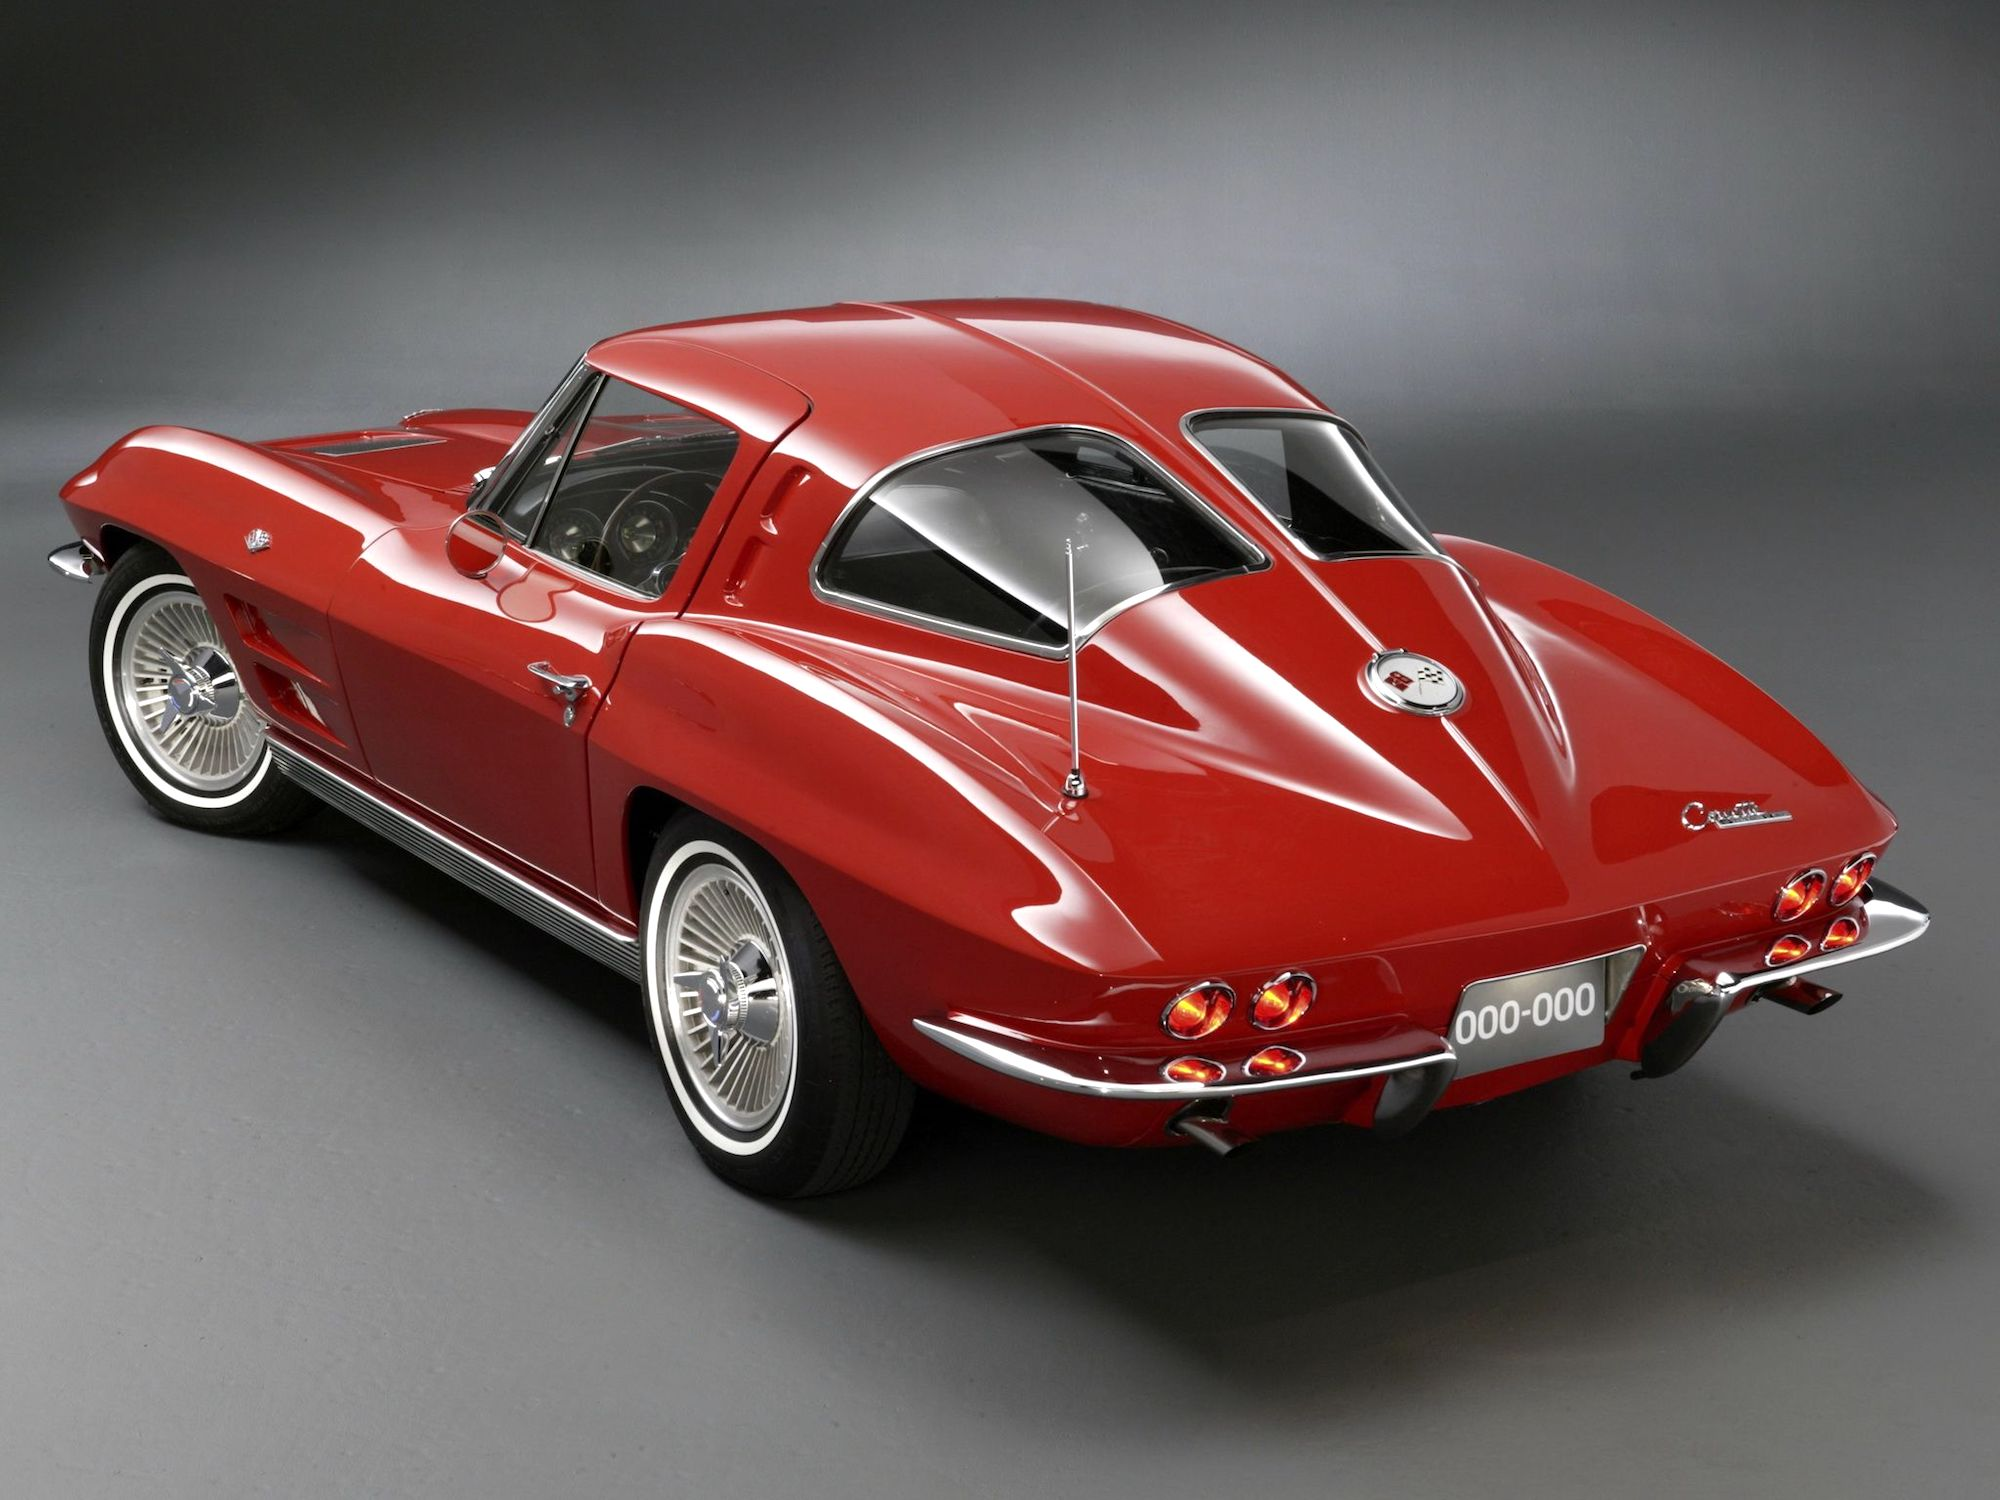 Chevrolet Corvette C2 StingRay L84 (1963)